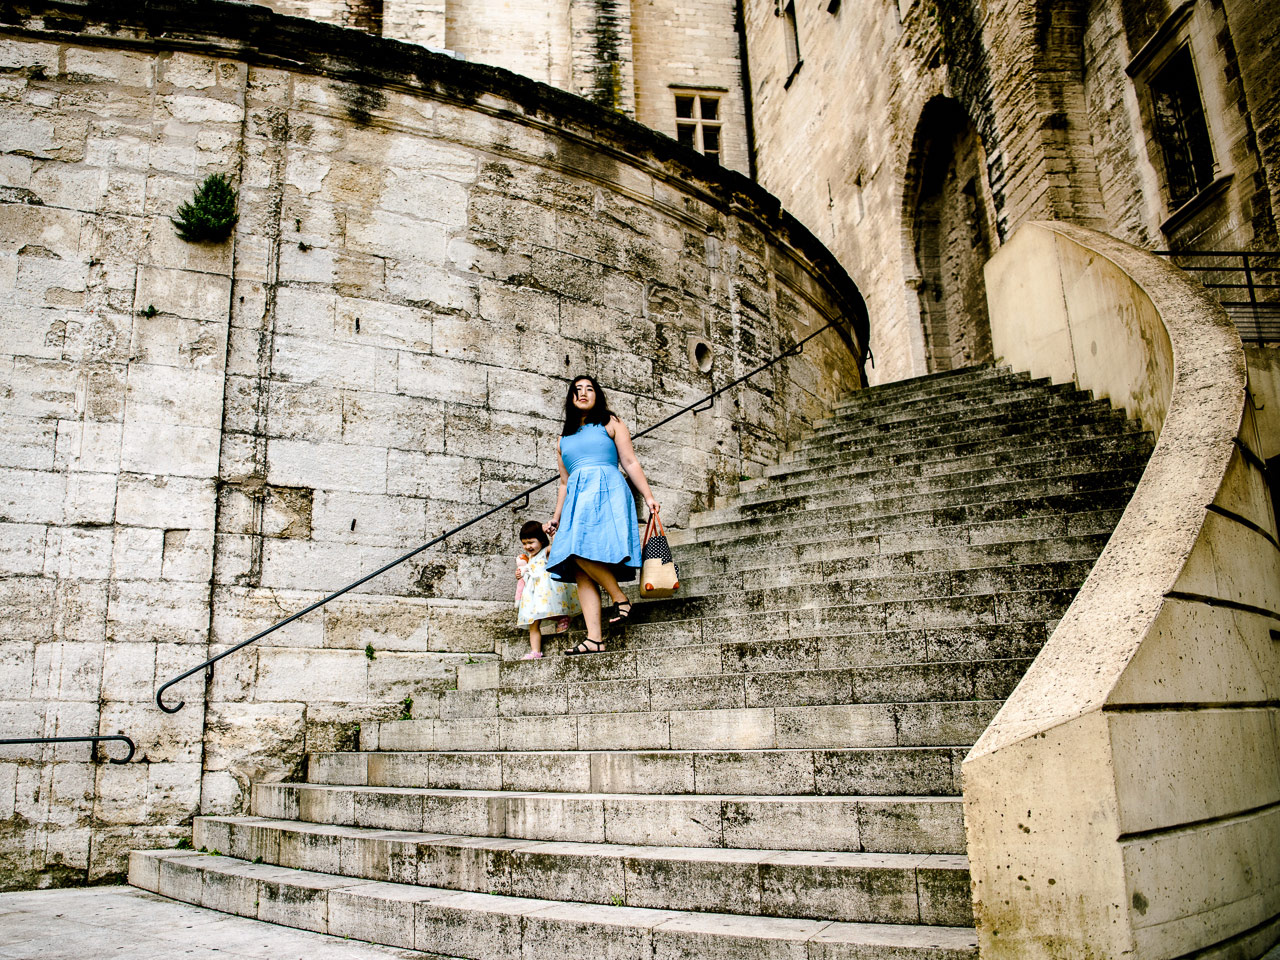 Descending the stairs of the Palais des papes in Avignon France. That place is big.